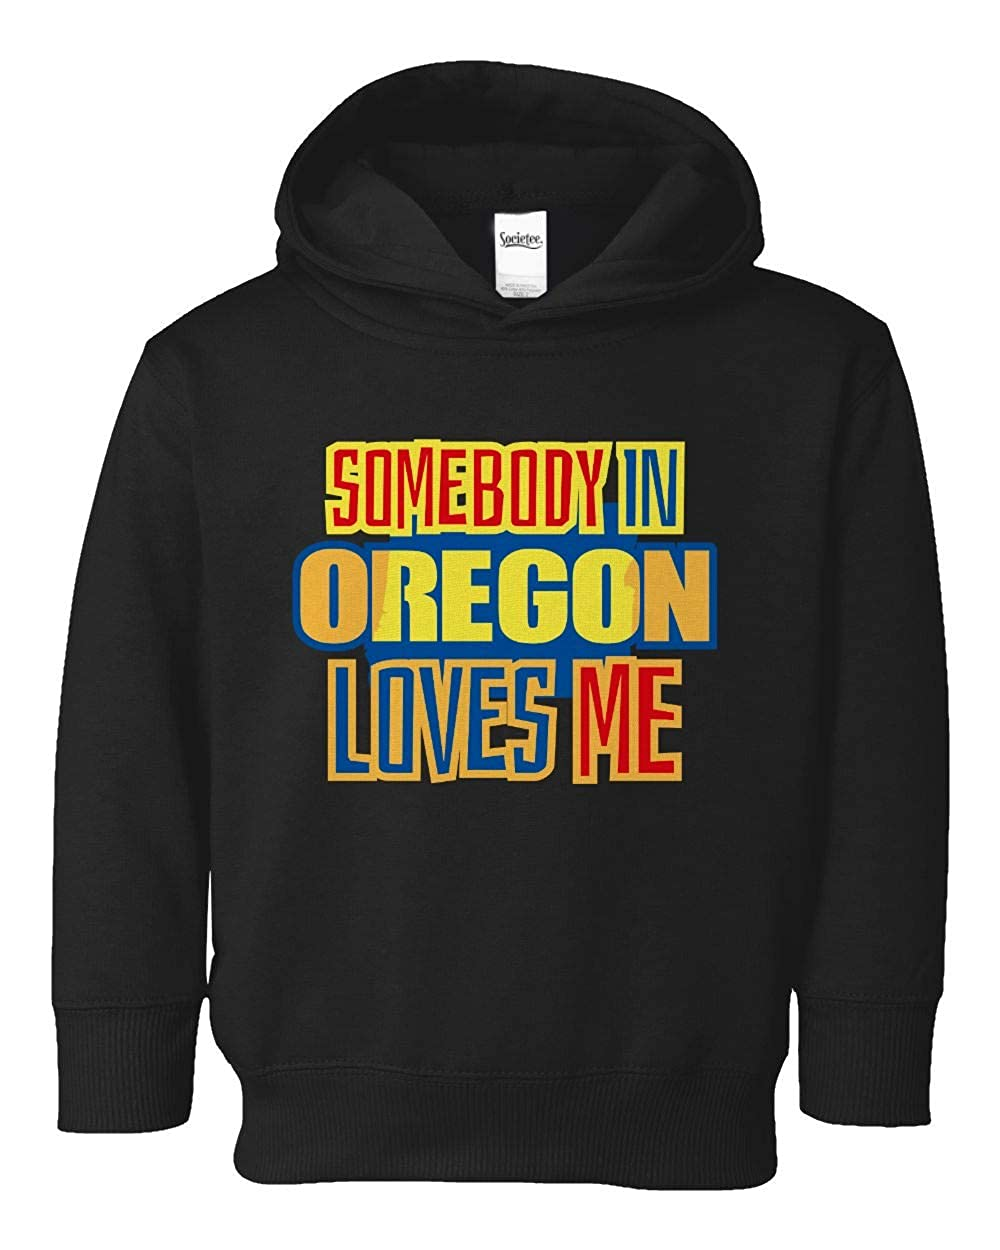 Societee Somebody in Oregon Loves Me Cute Girls Boys Toddler Hooded Sweatshirt